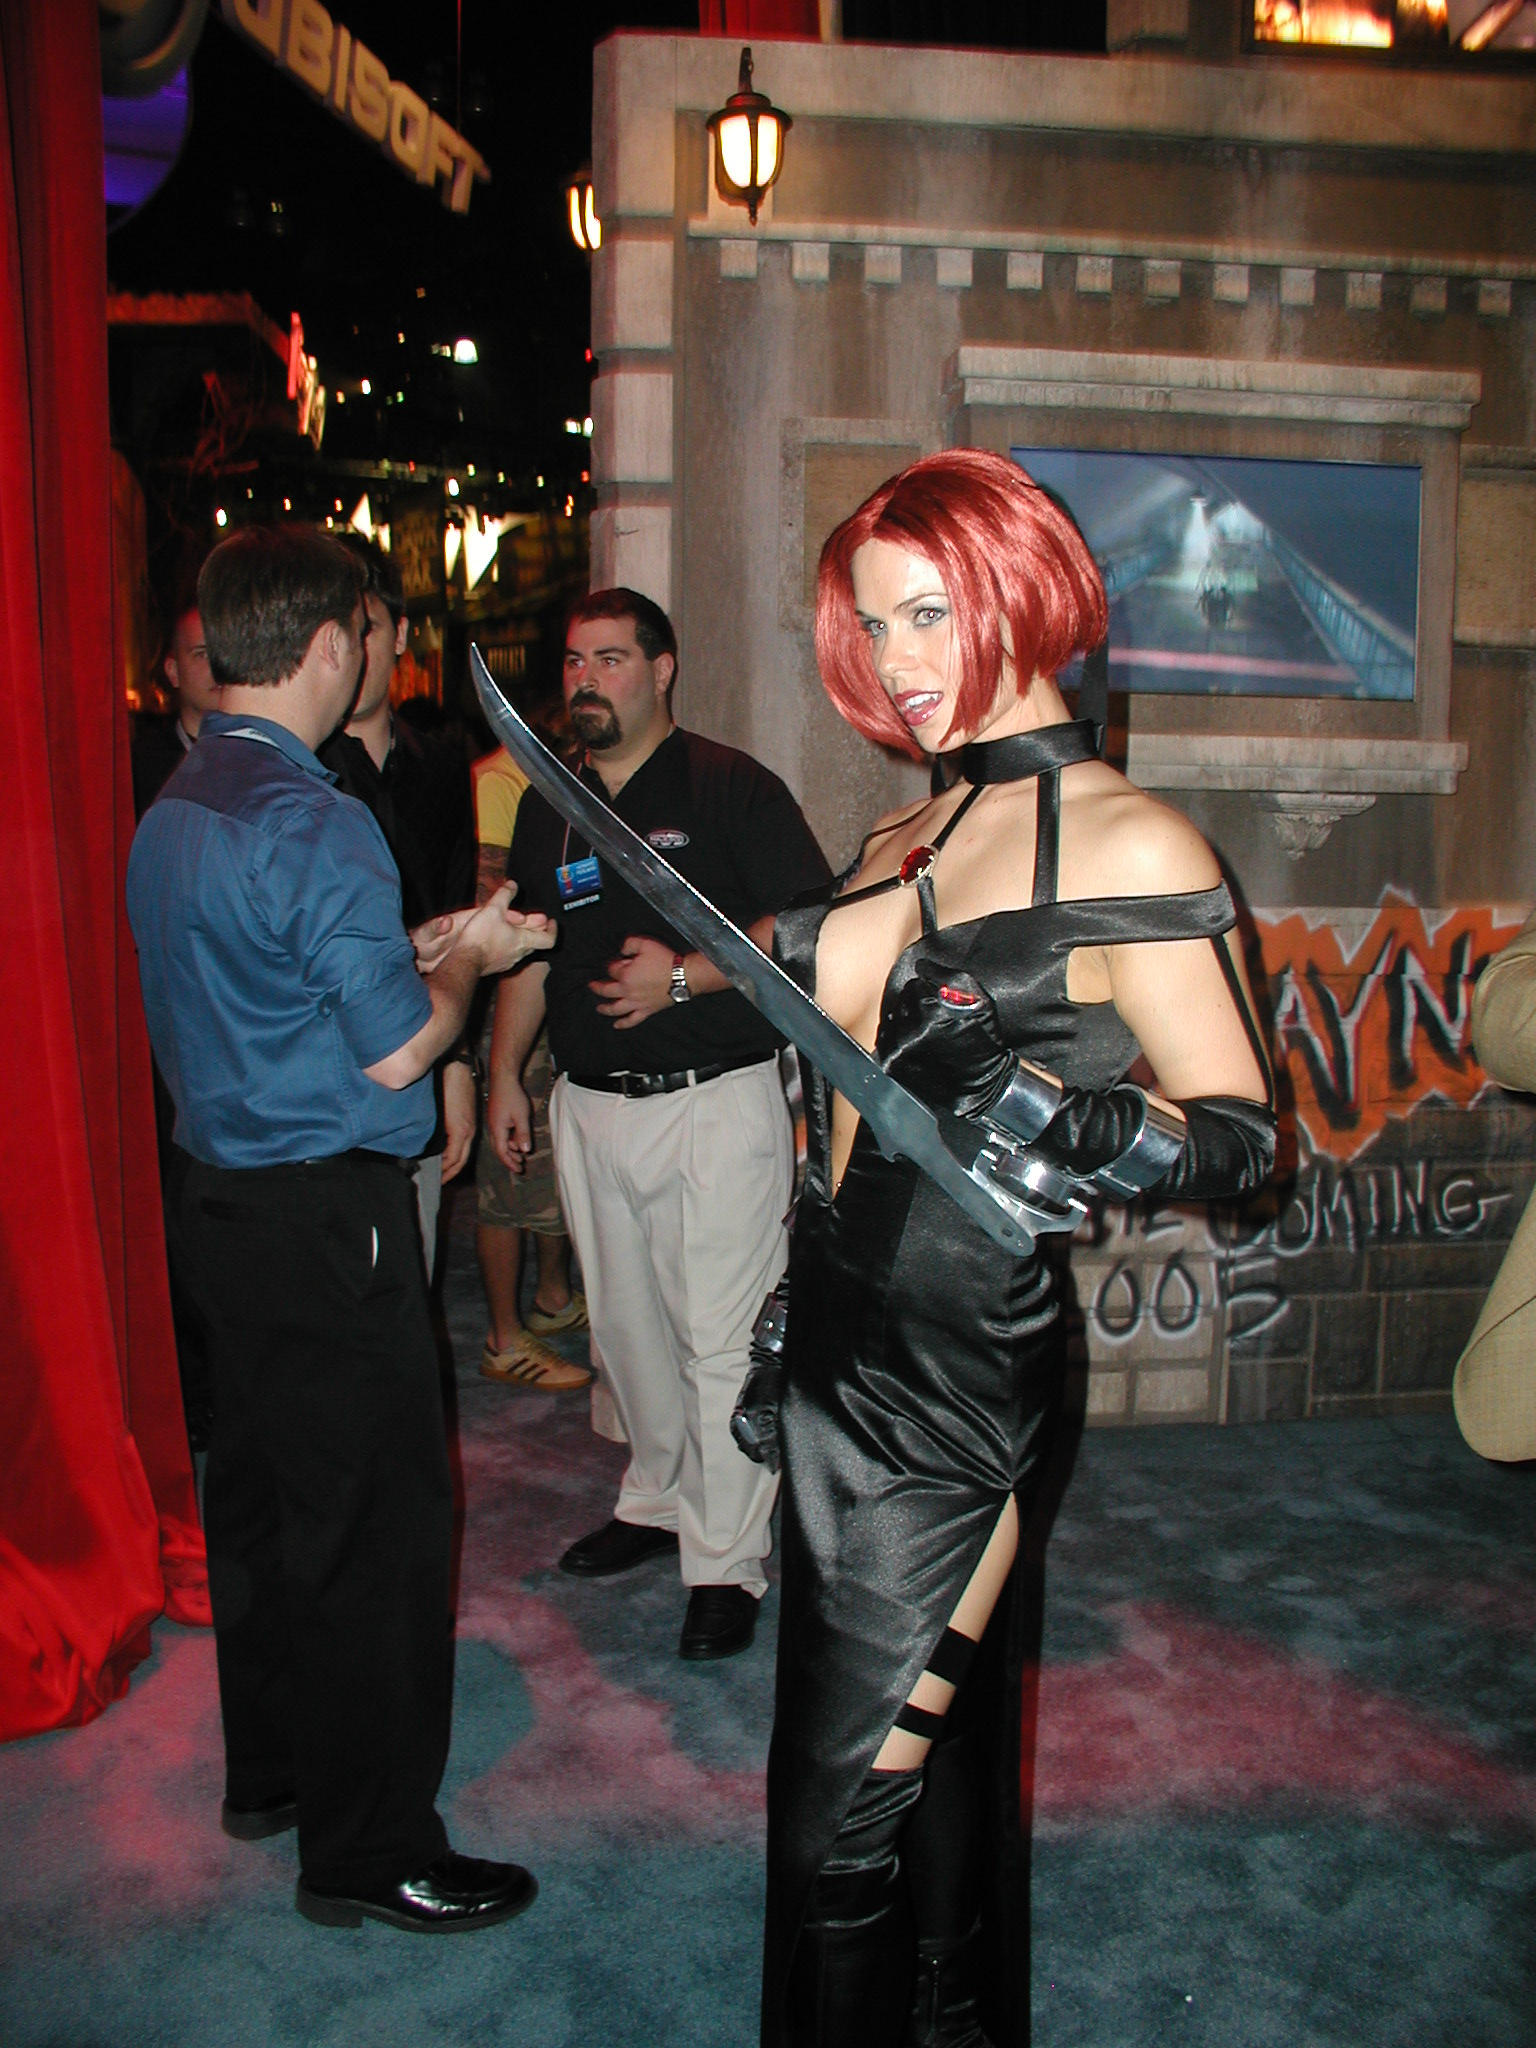 Booth Babe for Bloodrayne 2 by djtyrant on DeviantArt